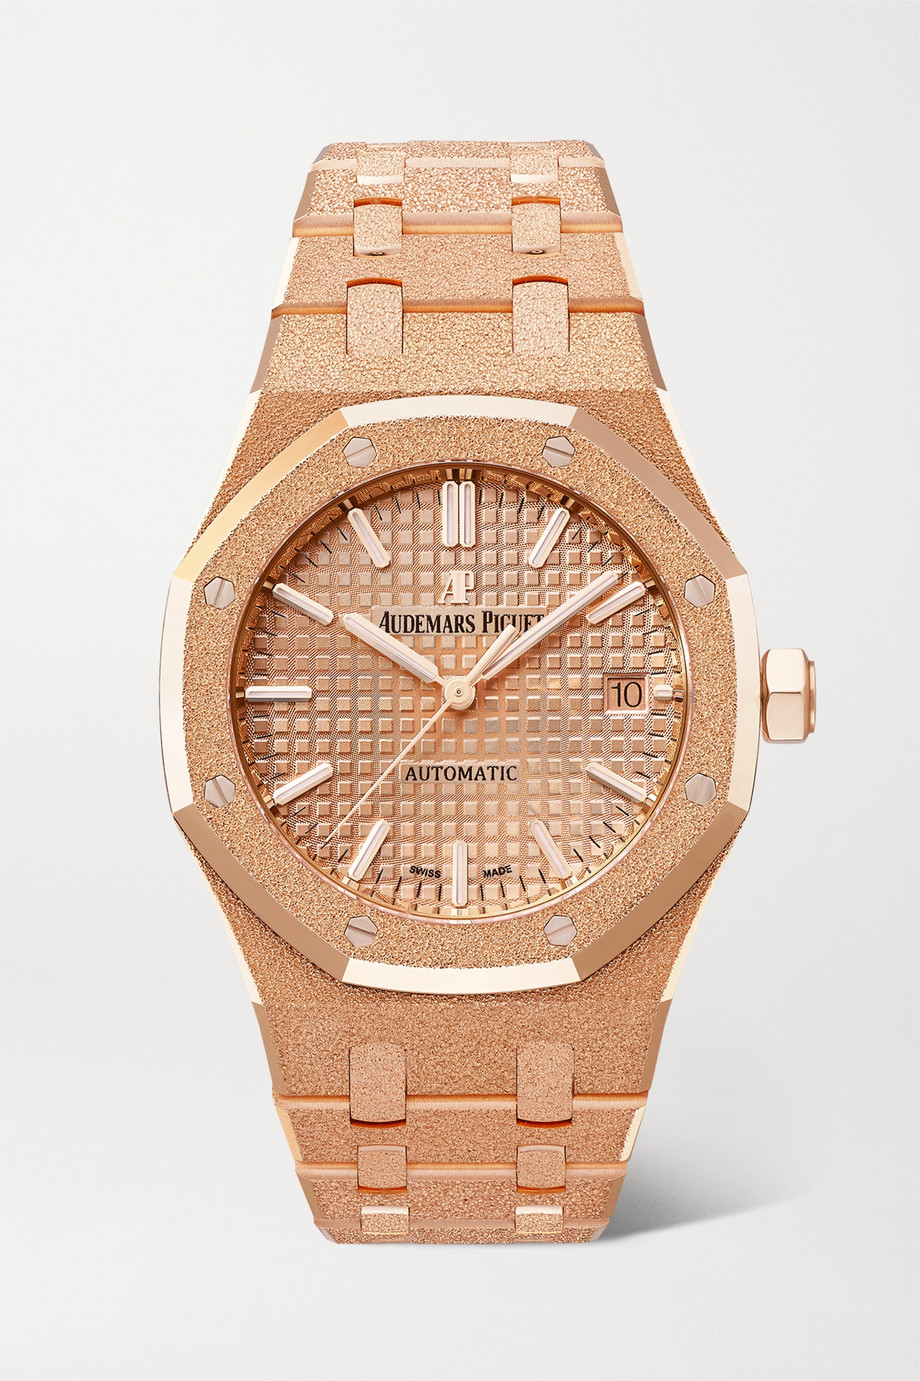 Audemars Piguet Montre en or rose 18 carats givré Royal Oak Automatique 37 mm